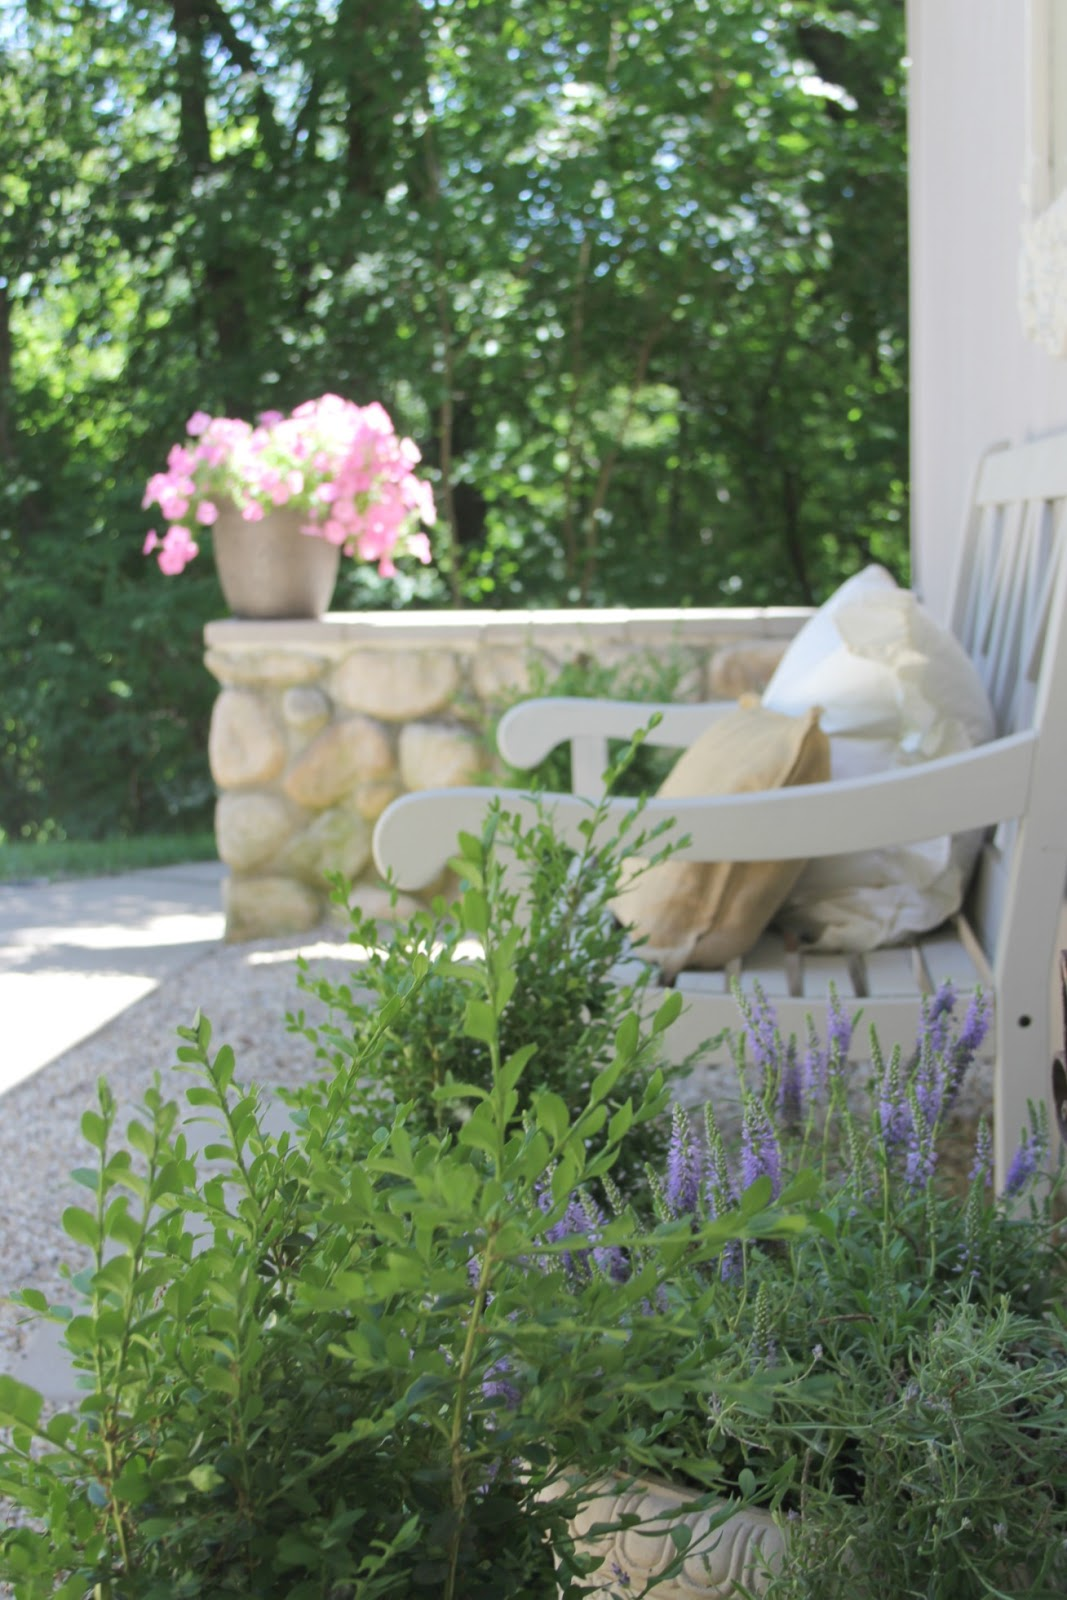 French inspired courtyard with lavender, pea gravel, bench, and stone wall. Come see more of my home in Hello Lovely House Tour in July. #hellolovelystudio #timeless #tranquil #interiordesign #europeancountry #europeanfarmhouse #simpledecor #serenedecor